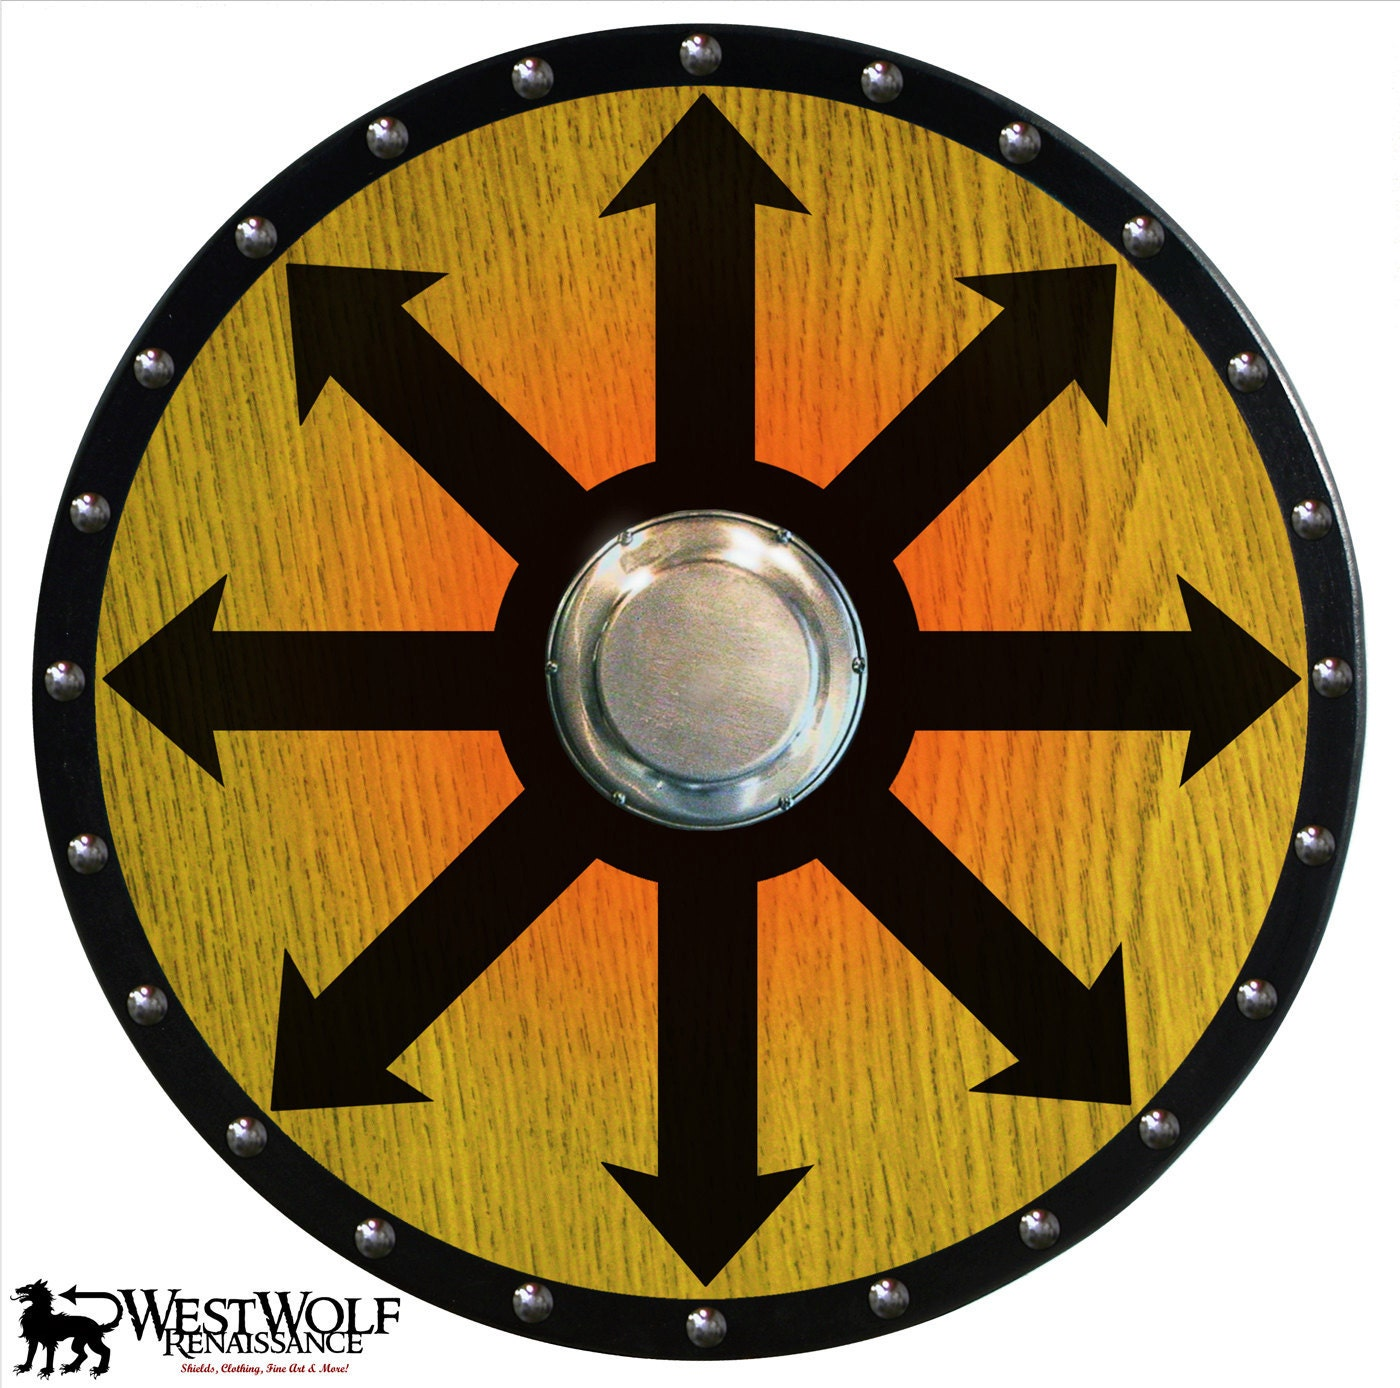 round wooden viking berserker shield with chaos cross design. Black Bedroom Furniture Sets. Home Design Ideas